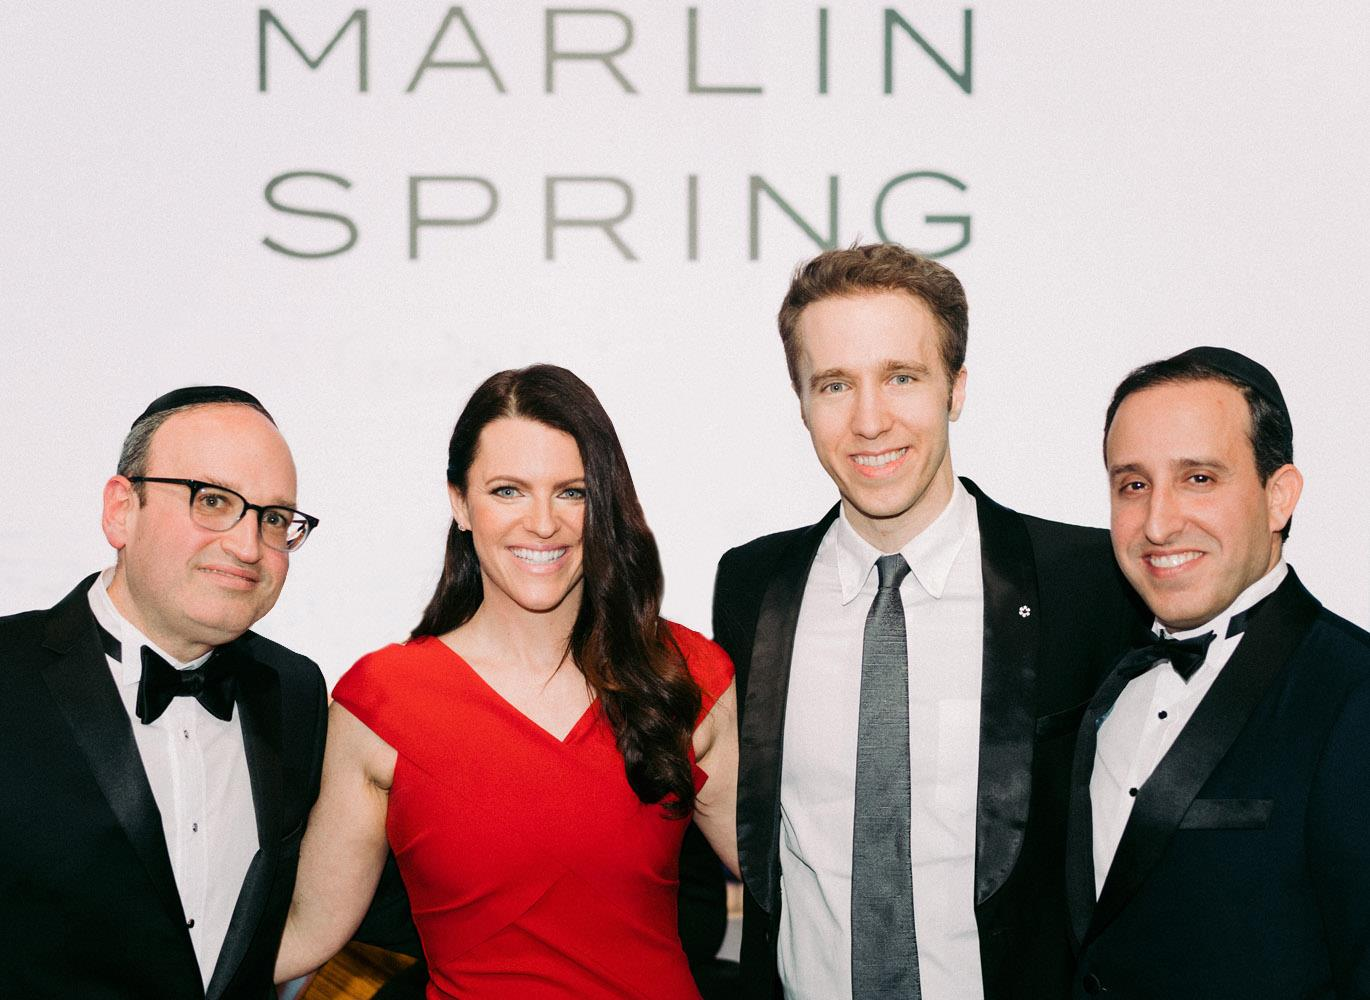 Marlin Spring Foundation to support non-profit youth initiatives Image